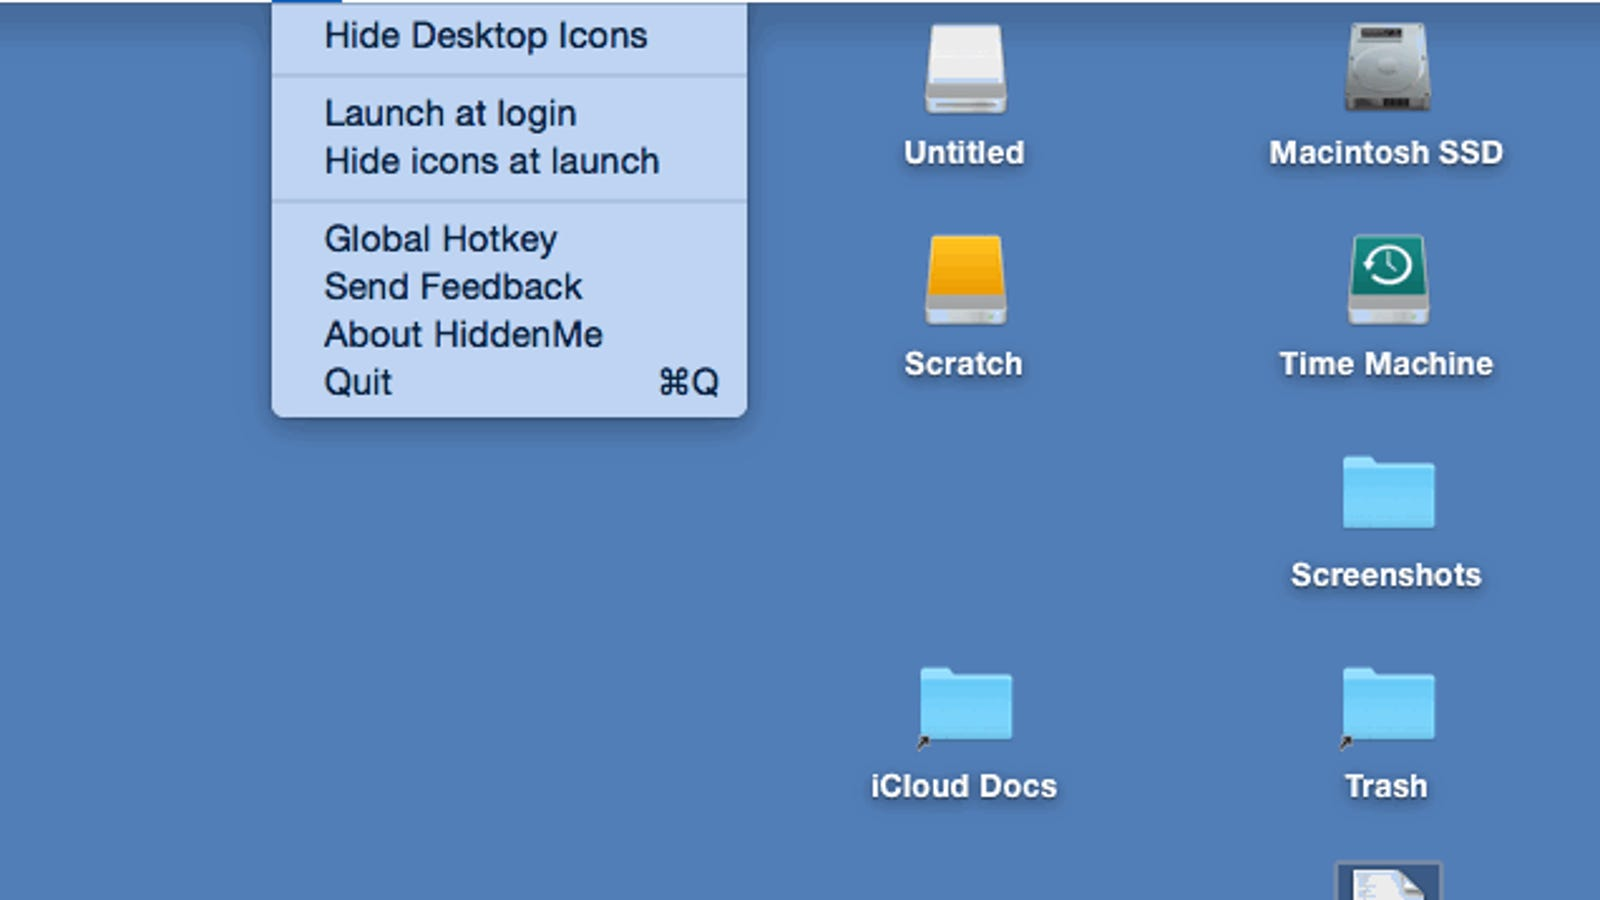 Turn Desktop Drive Icons On and Customize Their Appearance